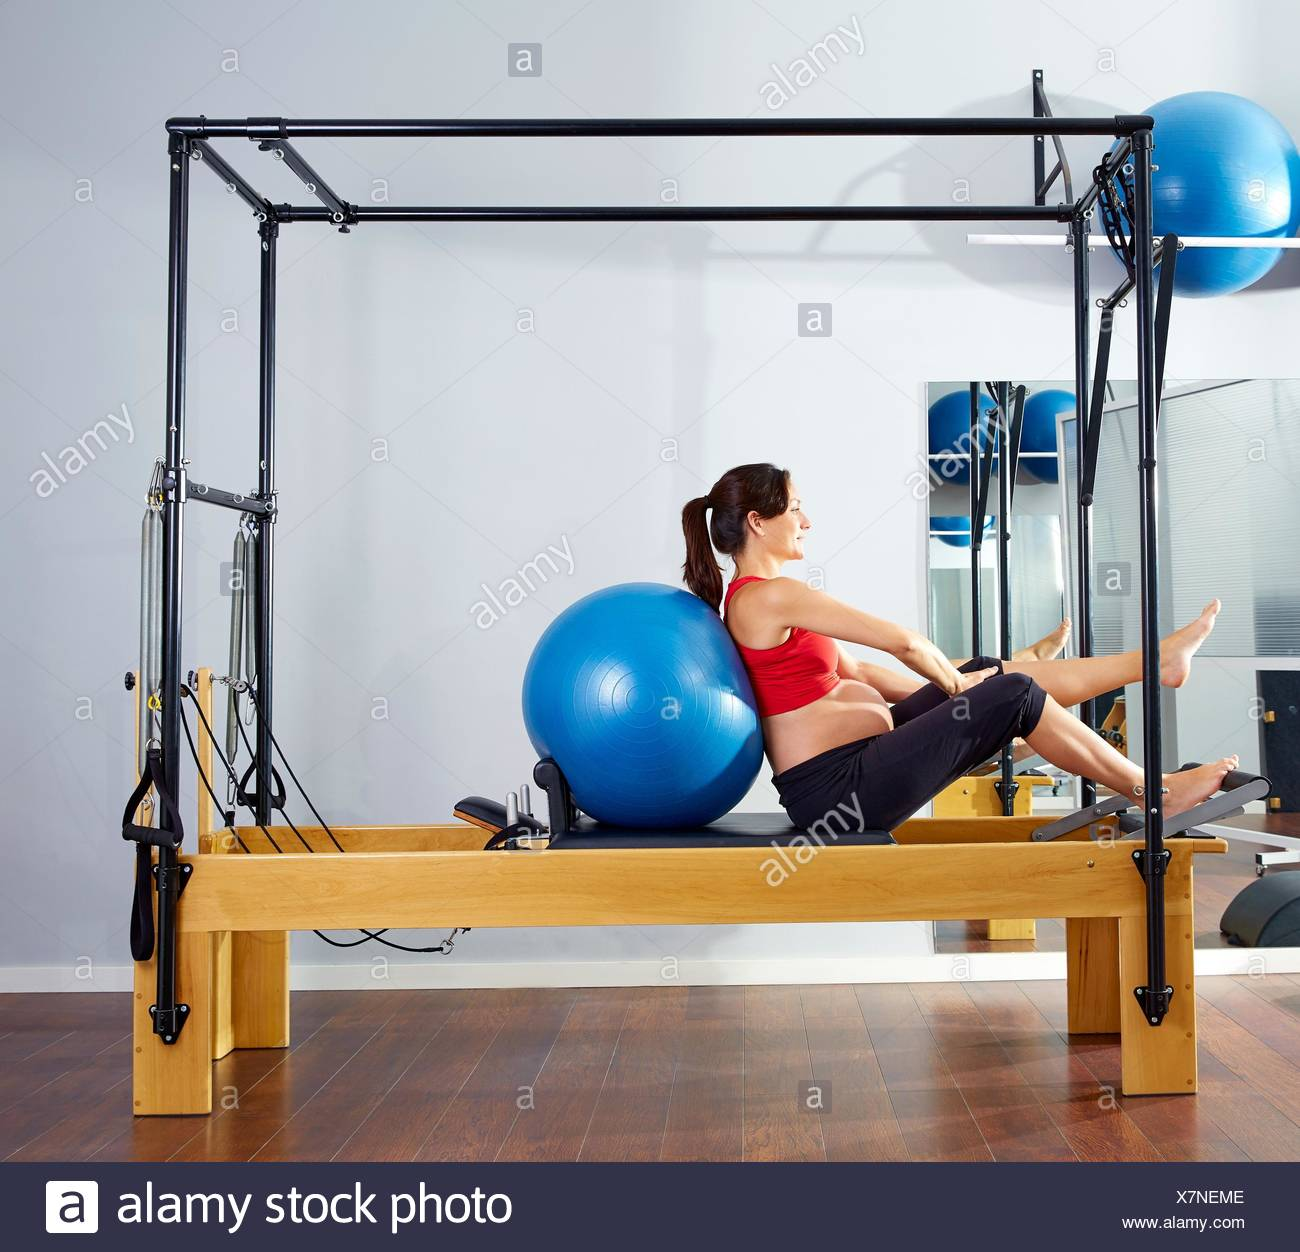 pregnant woman pilates reformer fitball exercise workout at gym. - Stock Image